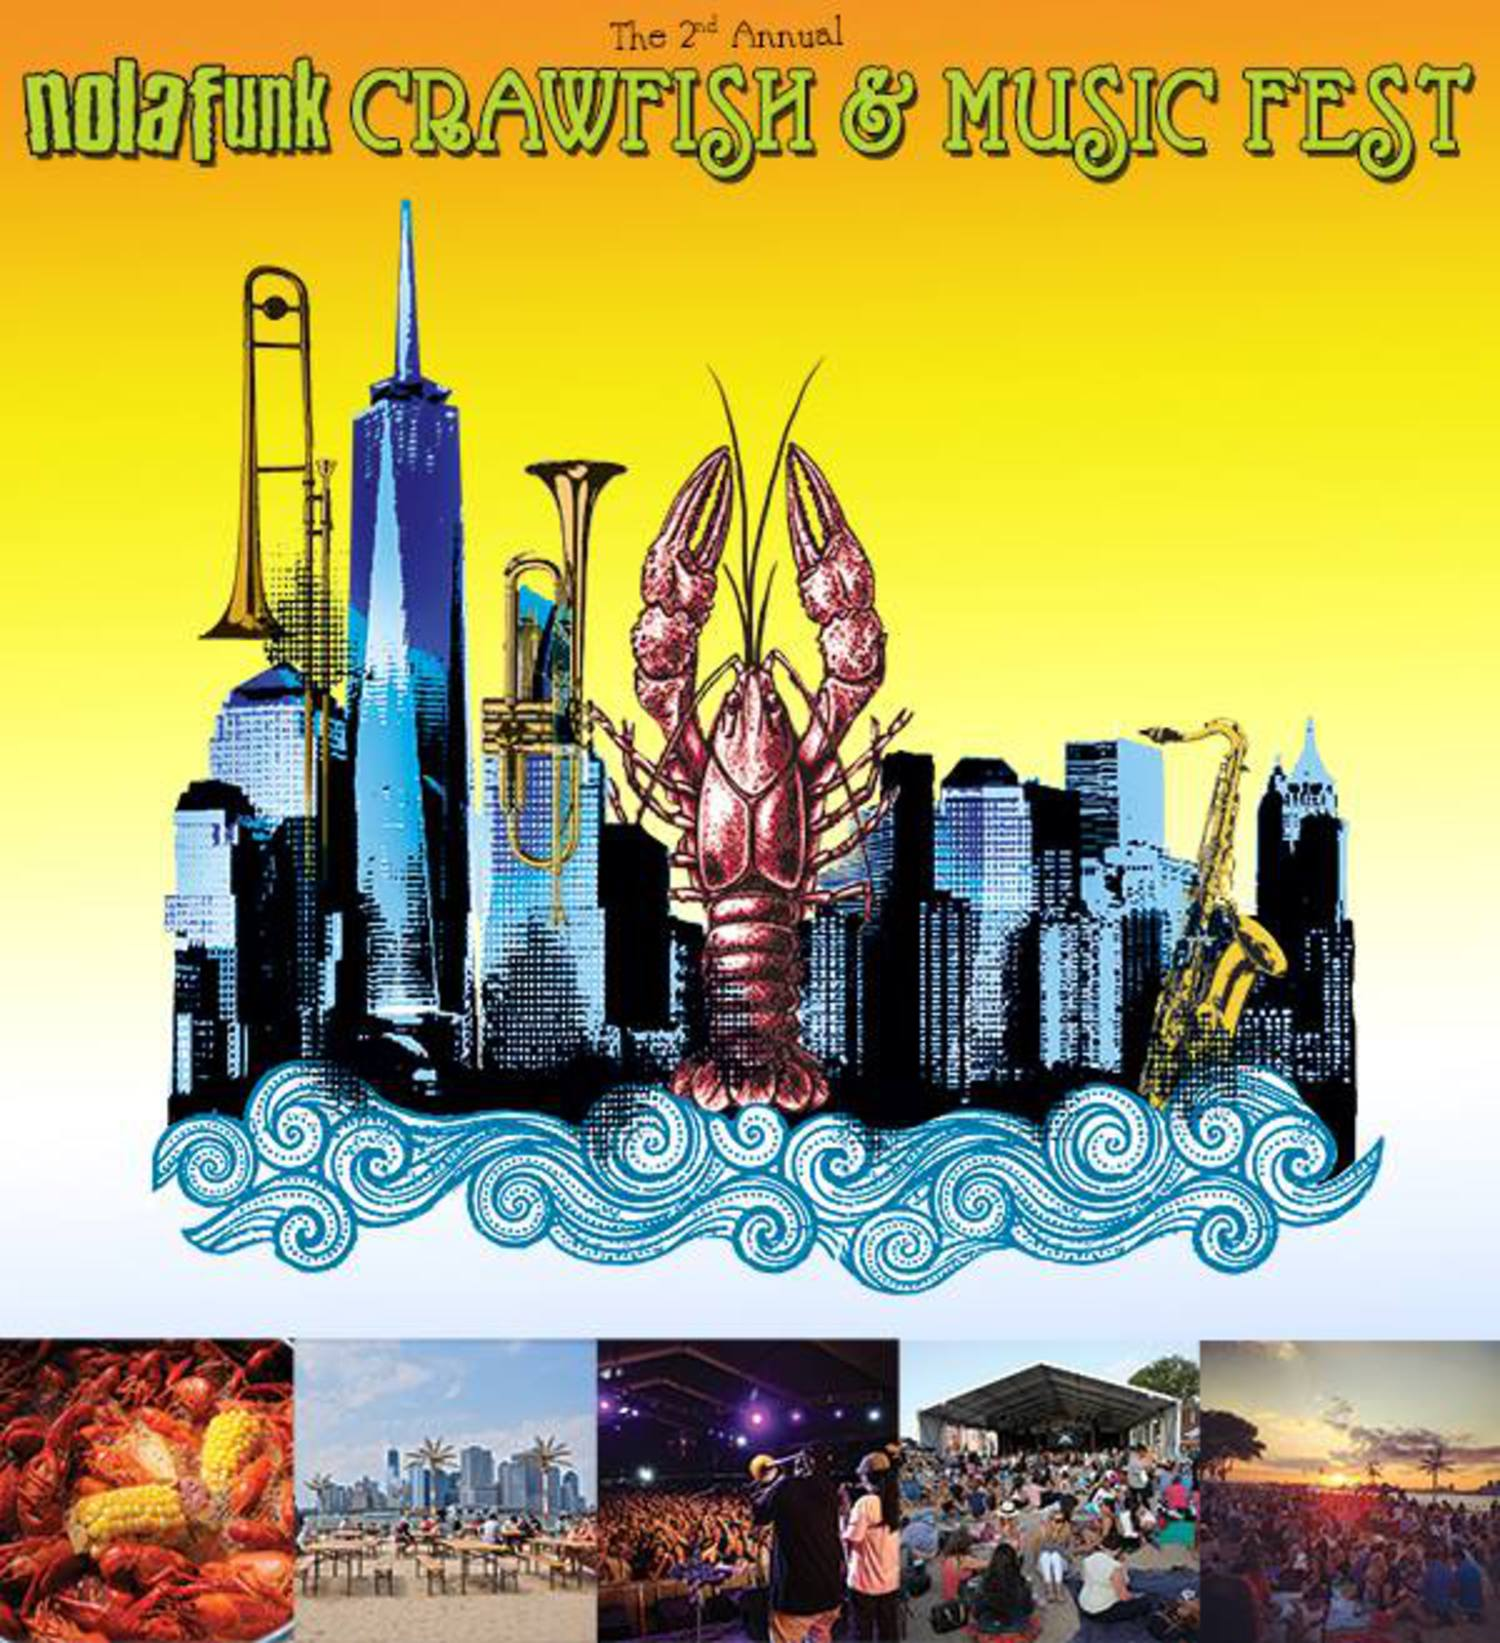 2nd Annual Crawfish and Music Festival